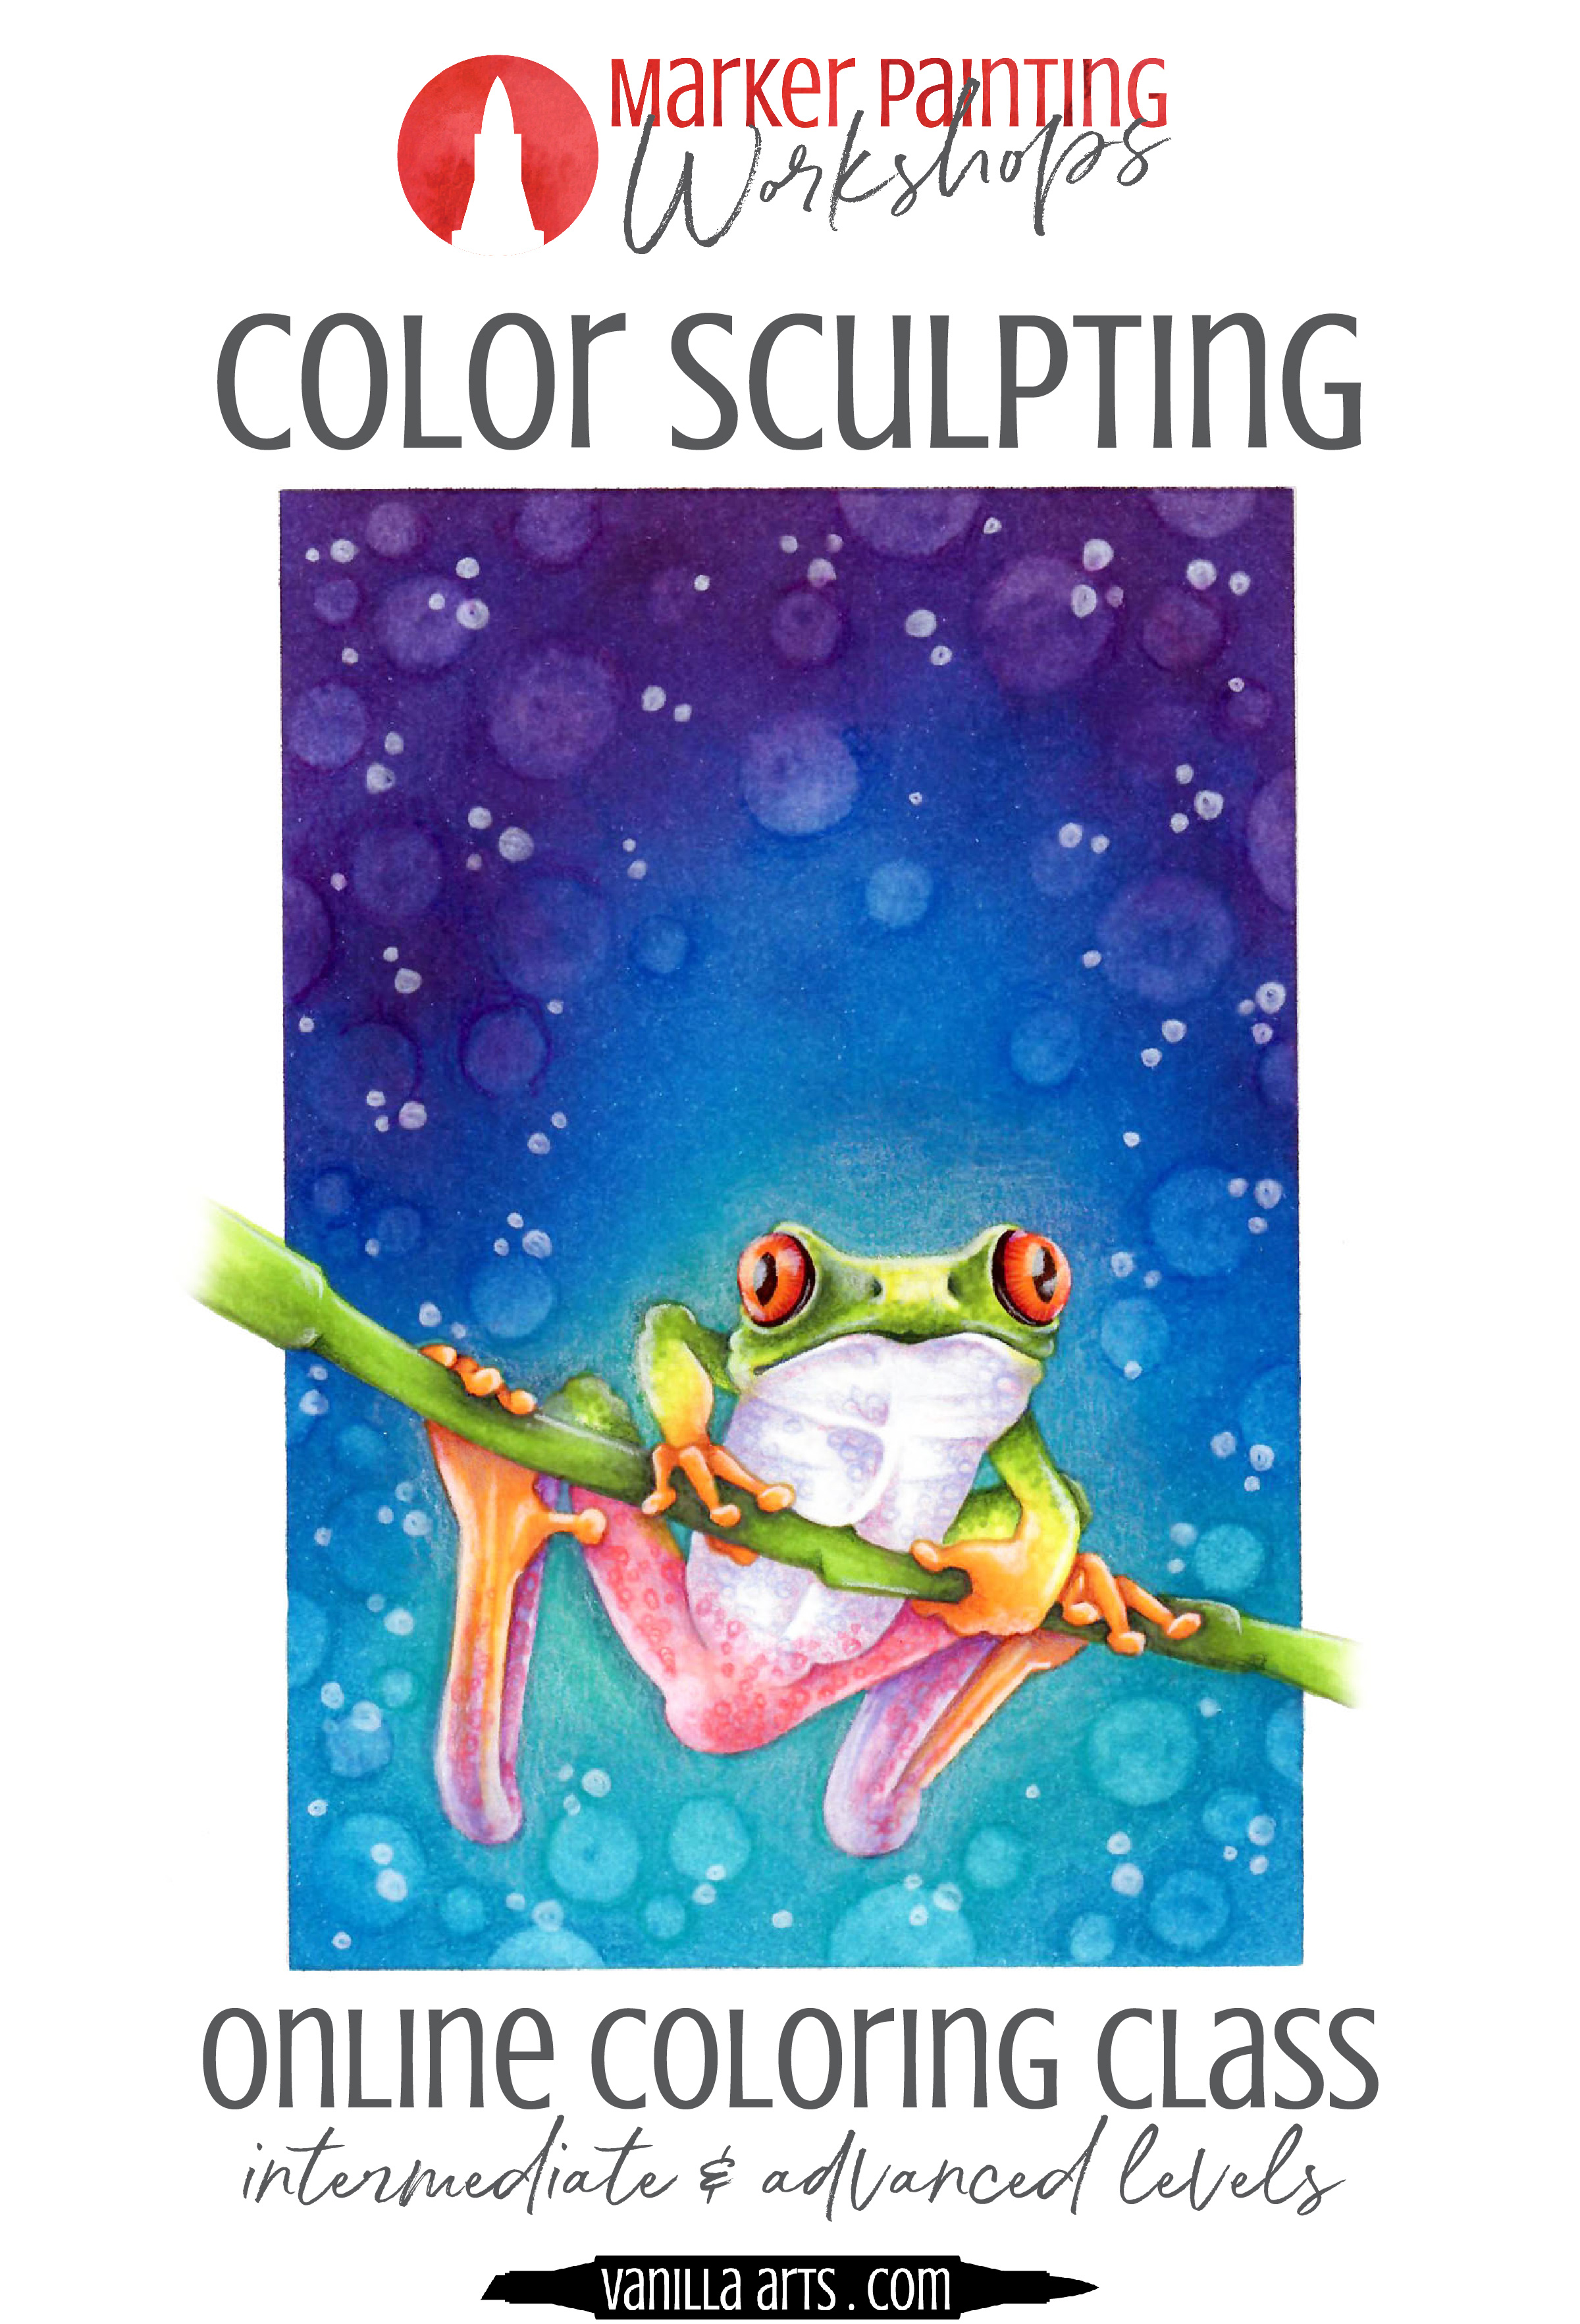 """Tree Frog a Marker Painting Workshops at VanillaArts.com. Learn to add realism and artistry to your Copic Marker or colored pencil coloring projects. """"Tree Frog"""" teaches the color sculpting process to maximize realism.   MarkerPainting.com  #copicmarker #coloredpencil #coloring #howtocolor #realisticcoloring"""